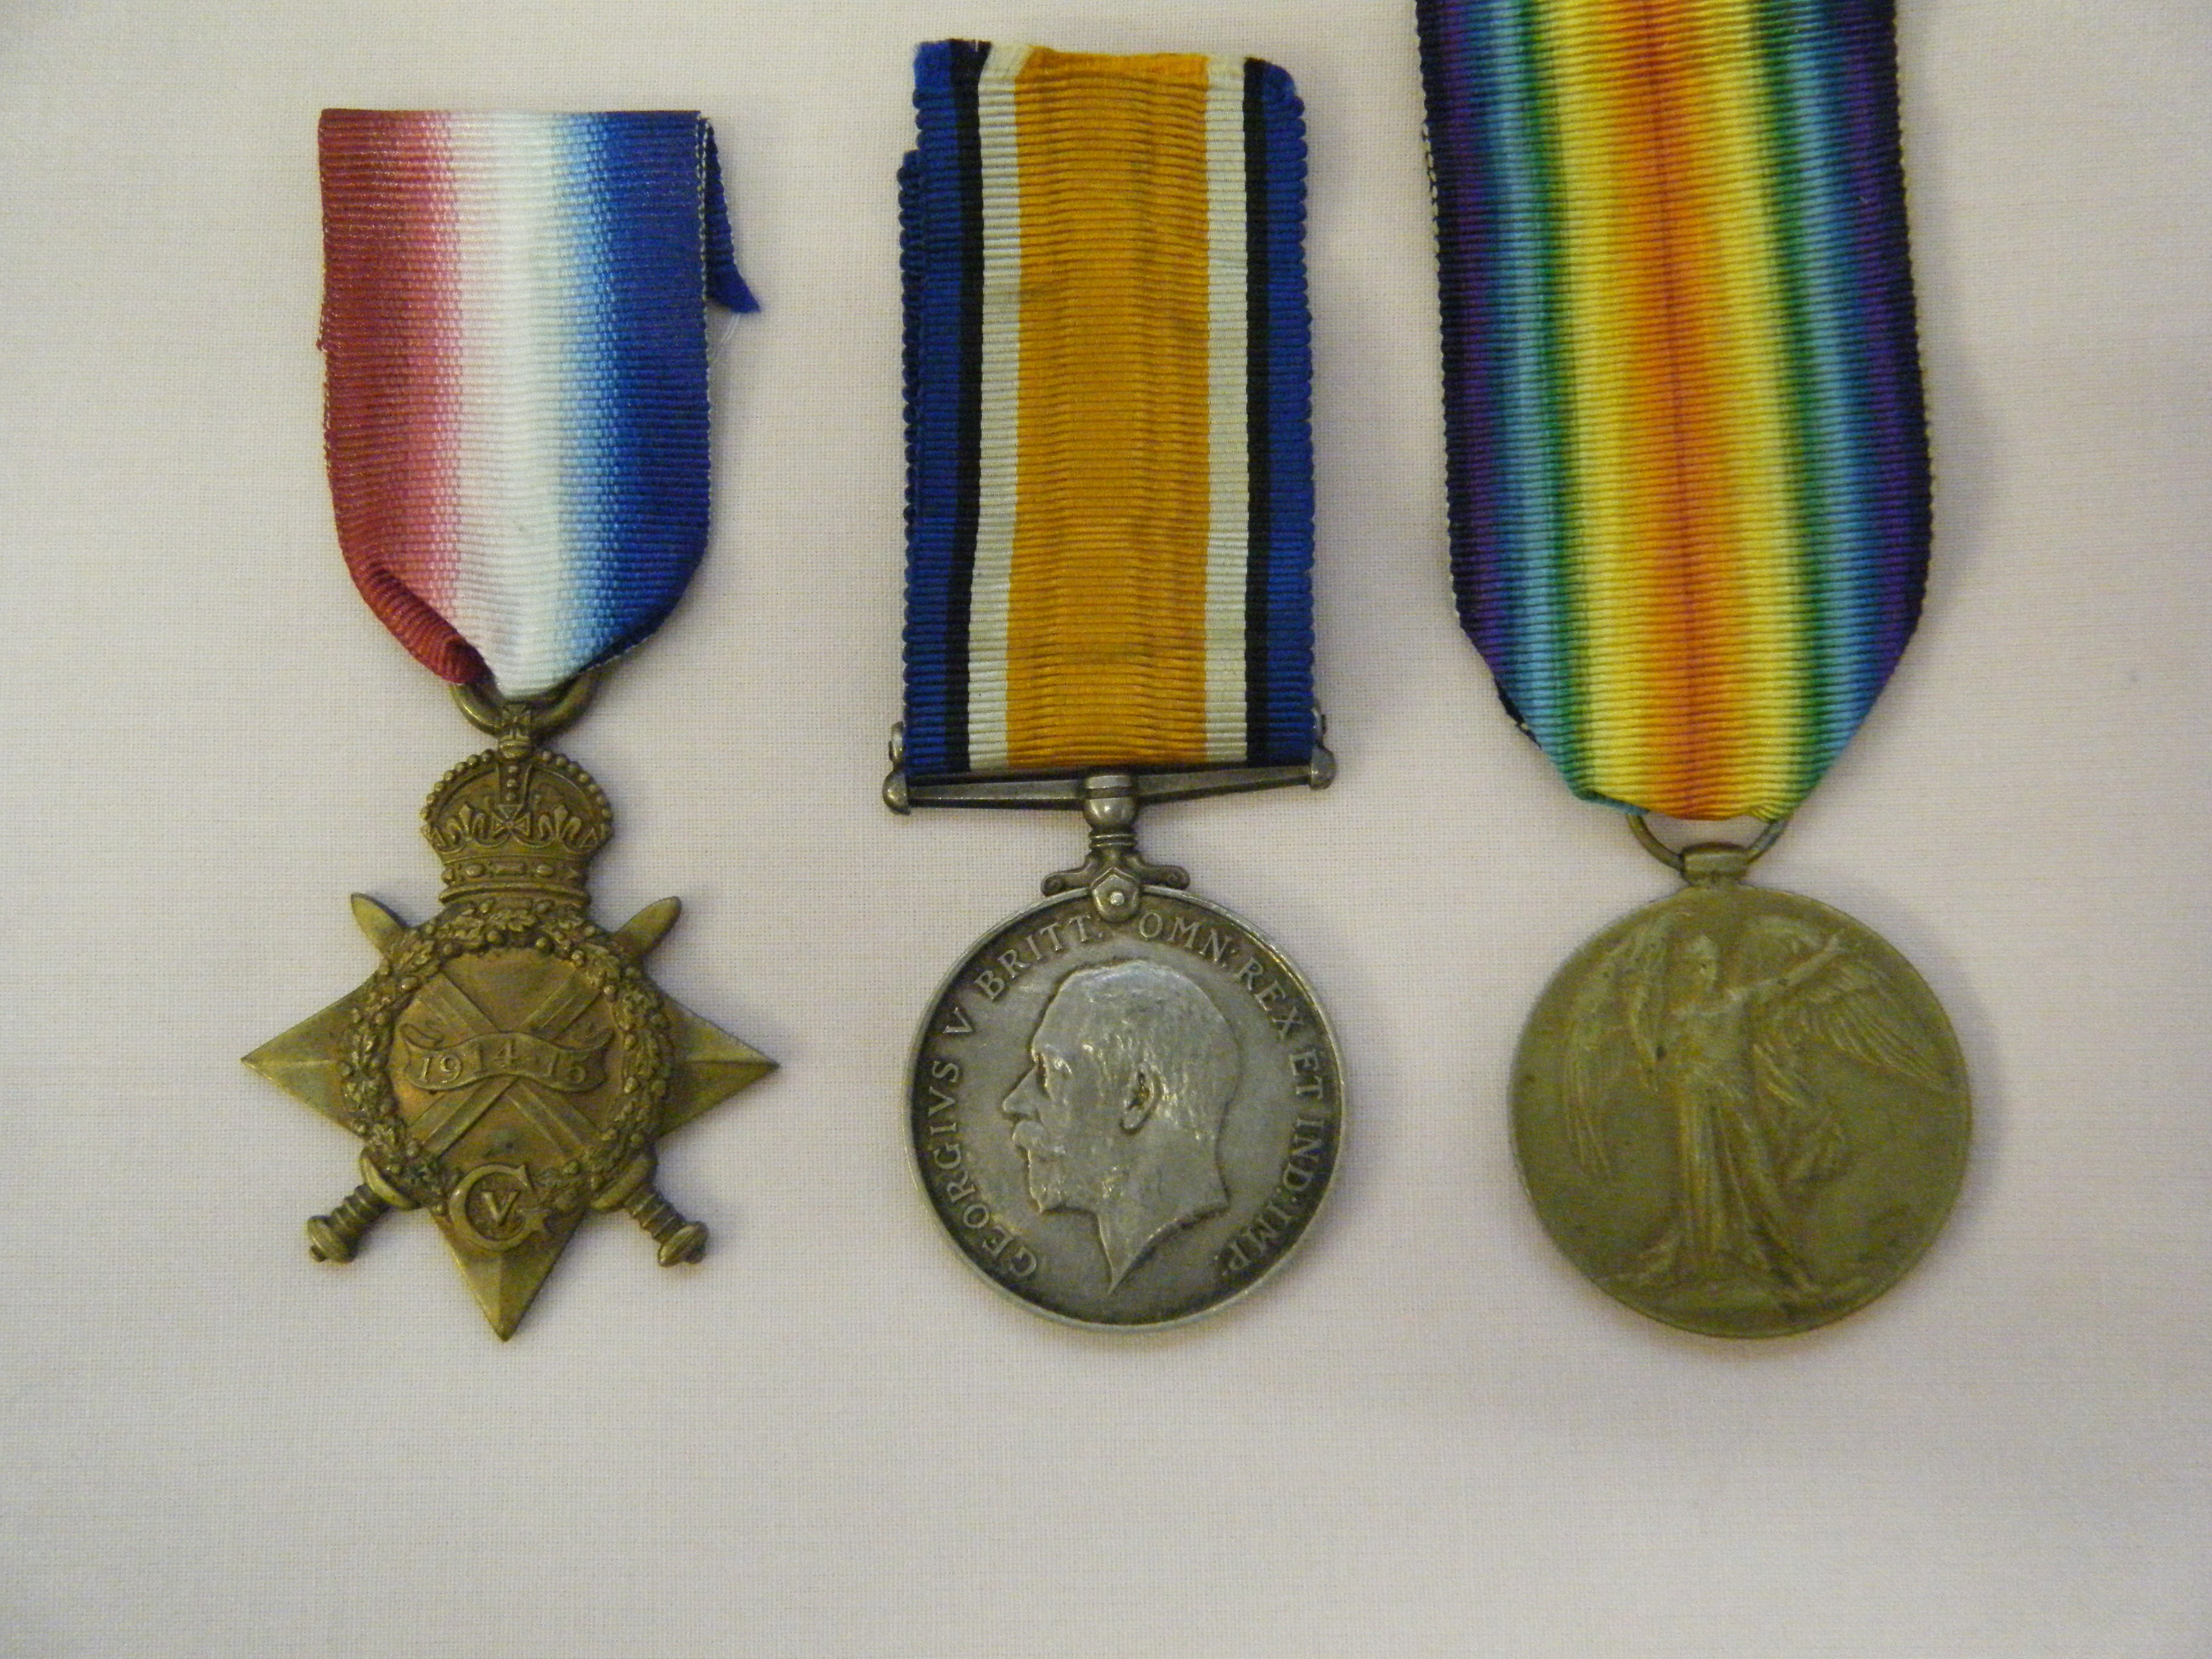 THREE.  Lt-Col. G.H.B. Vessey, Army Service Corps and Royal Engineers (to France 23/11/14, awarded O.B.E. and M.I.D. twice).